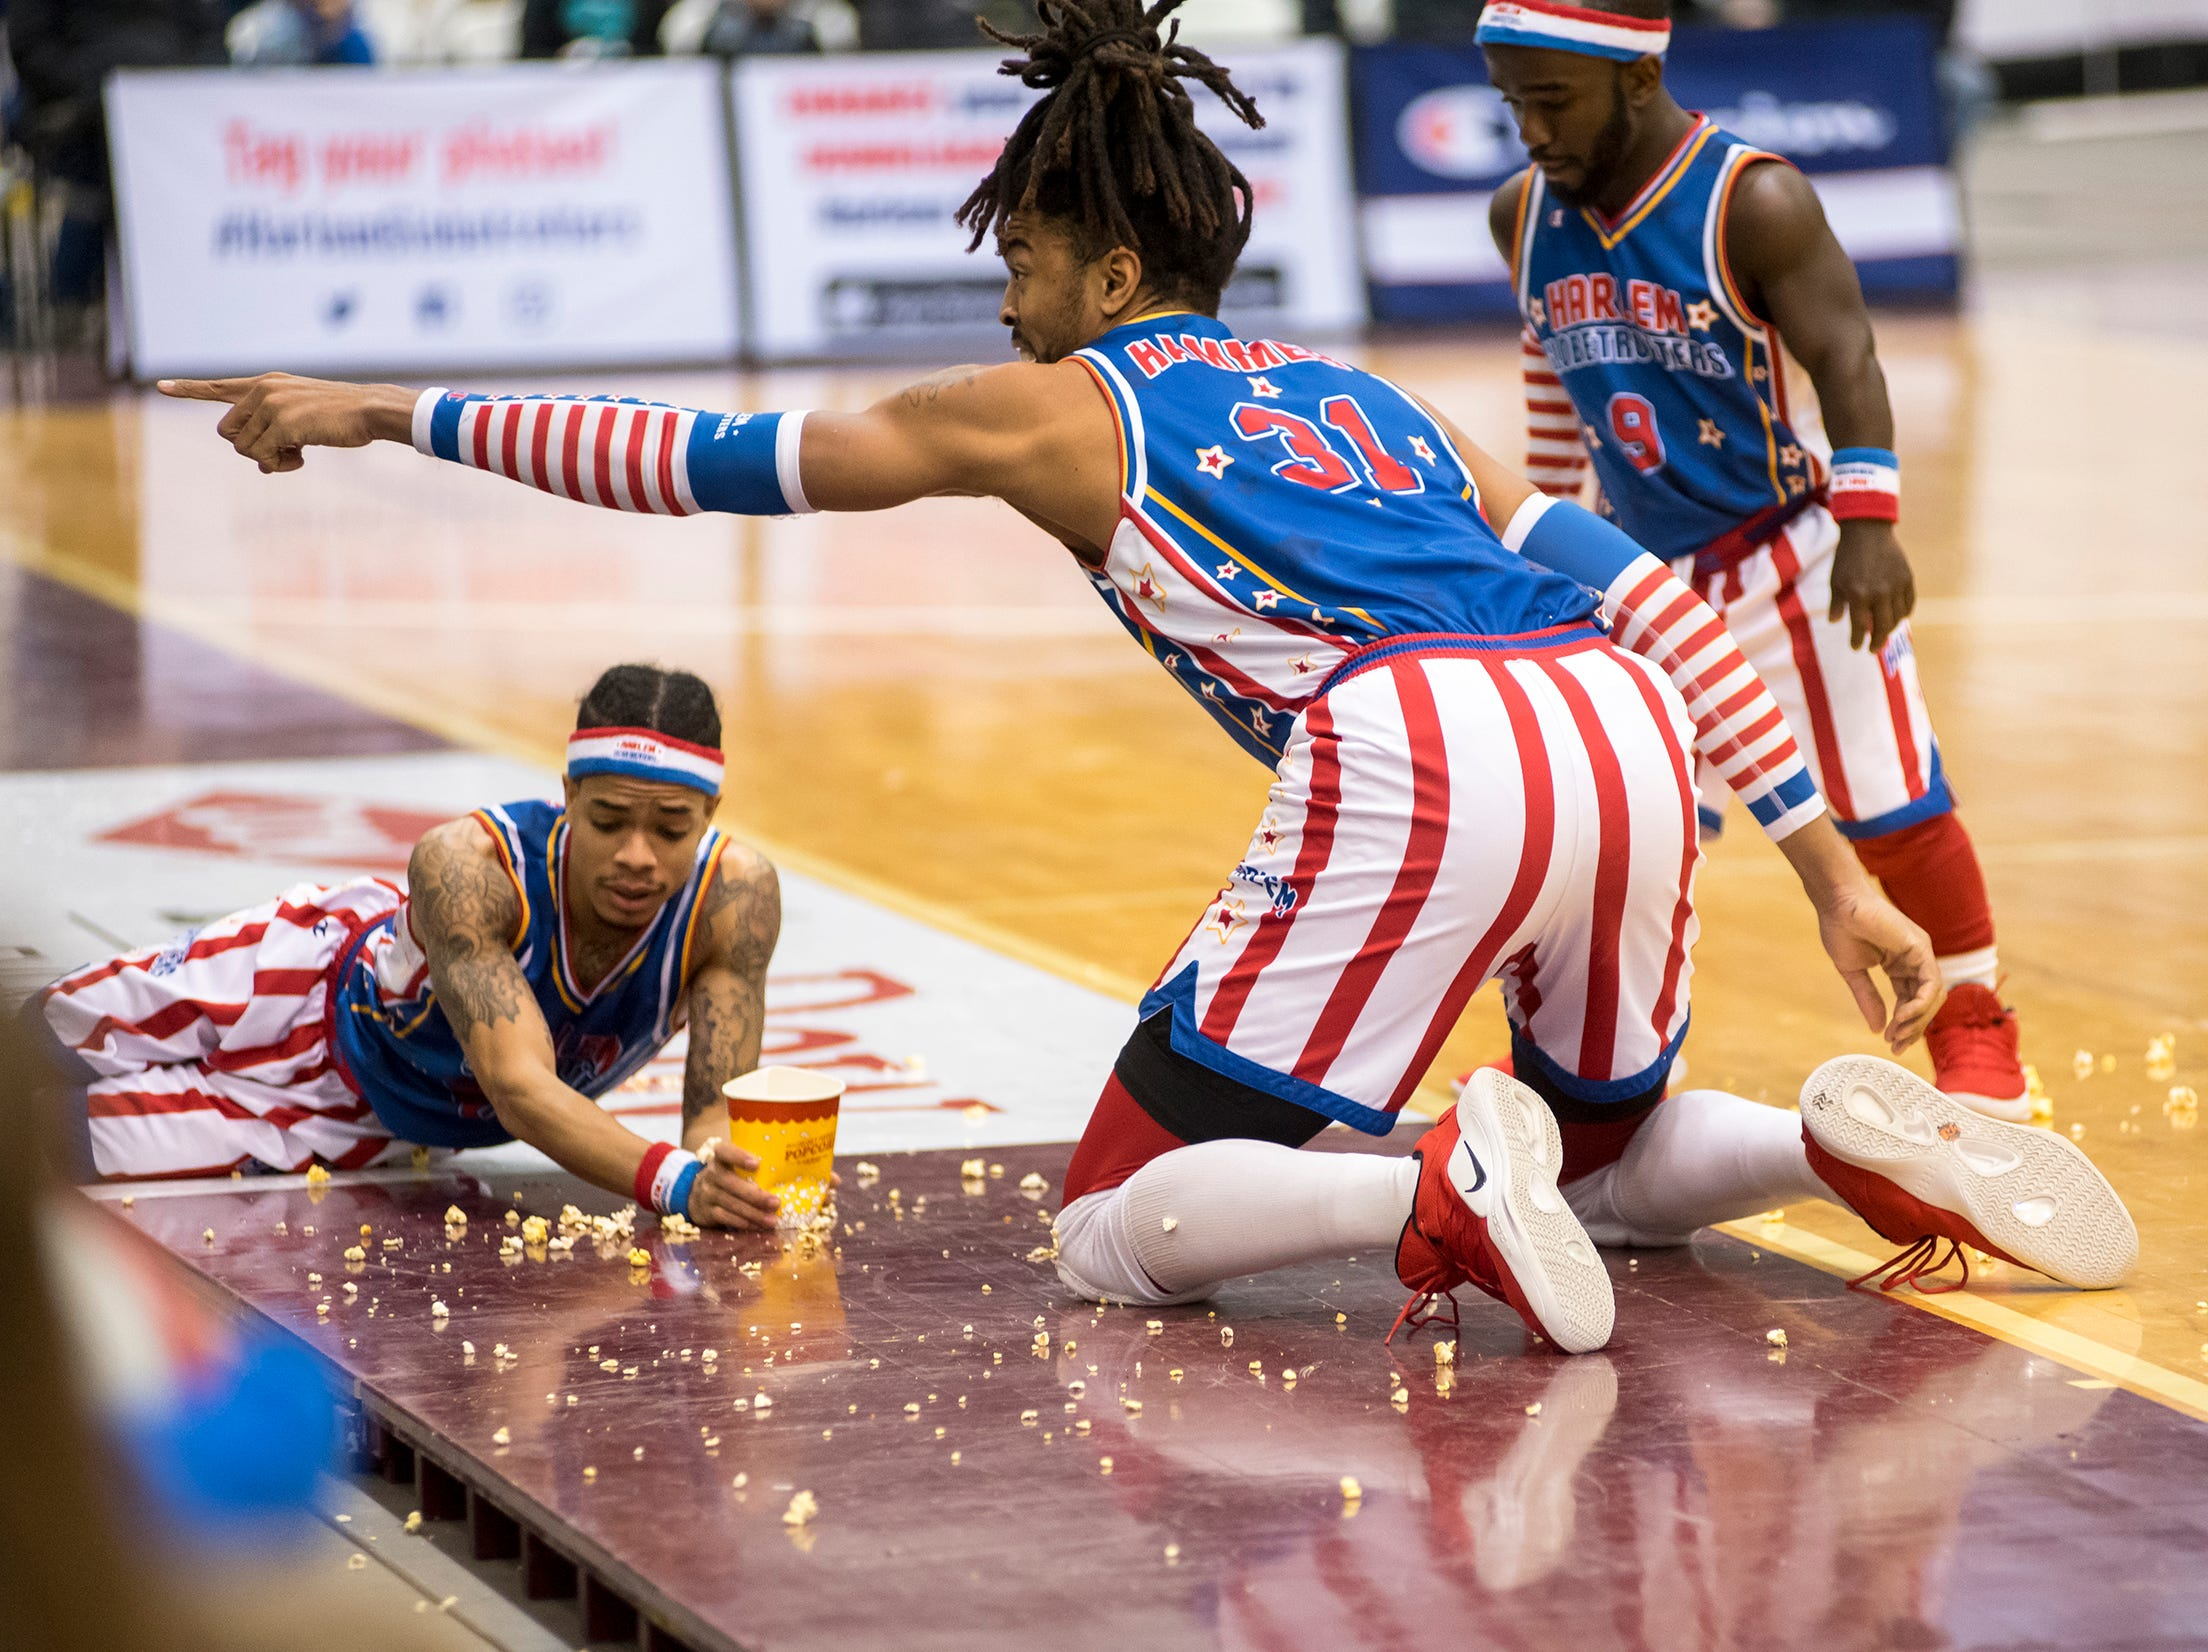 The Harlem Globetrotters entertain a crowd while they take on the Washington Generals Saturday, Feb. 2, 2019 at McMorran Arena in Port Huron.